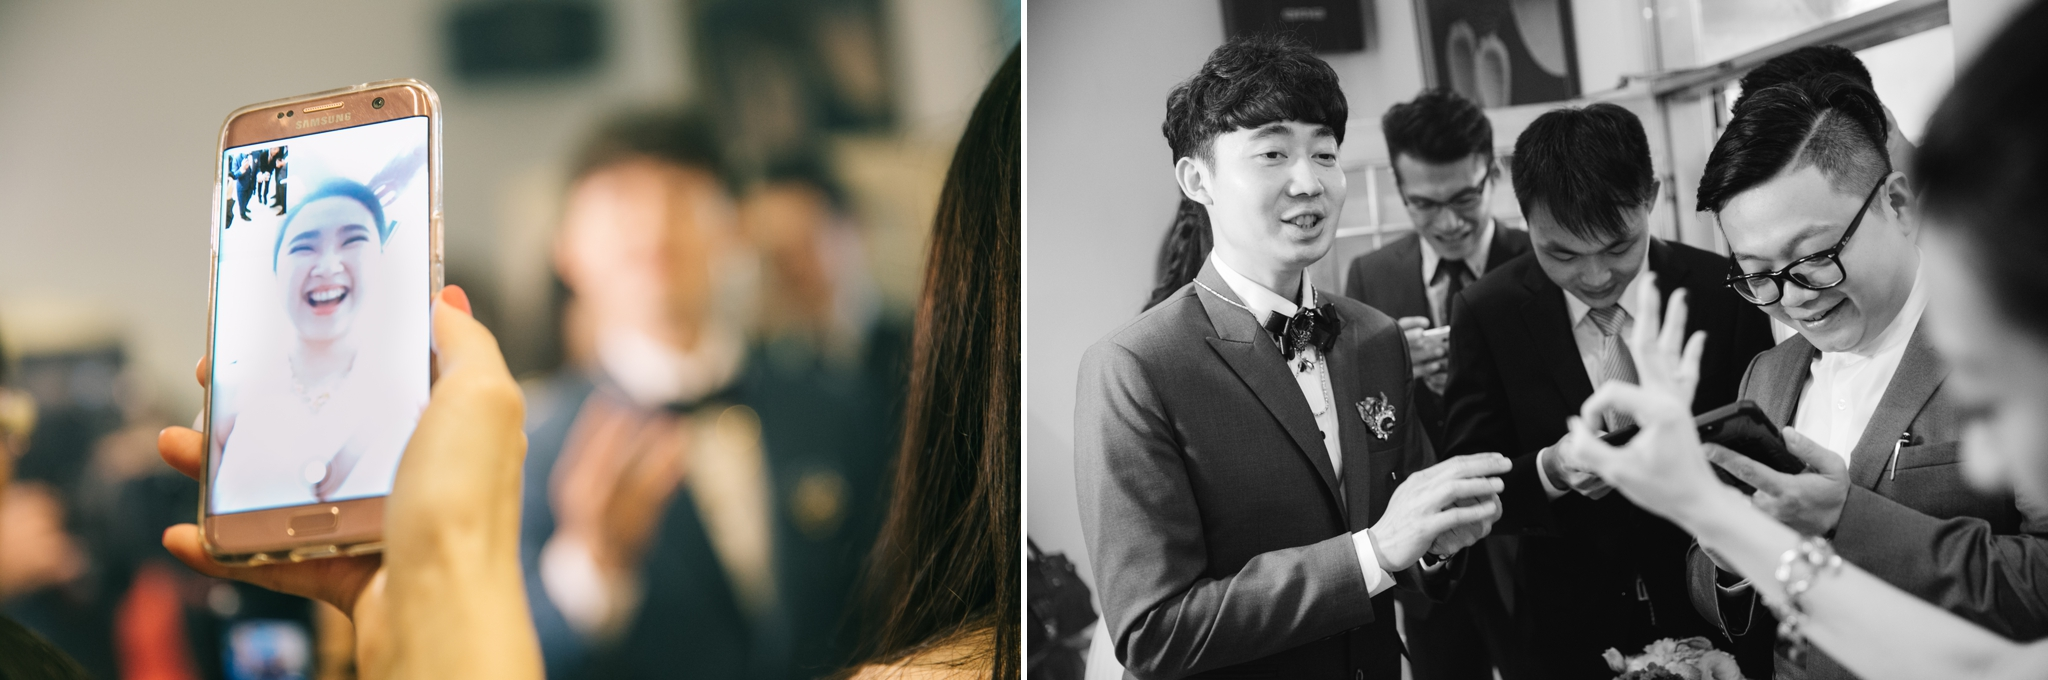 Keddy+Richard-wedding-新莊頤品飯店-073.jpg